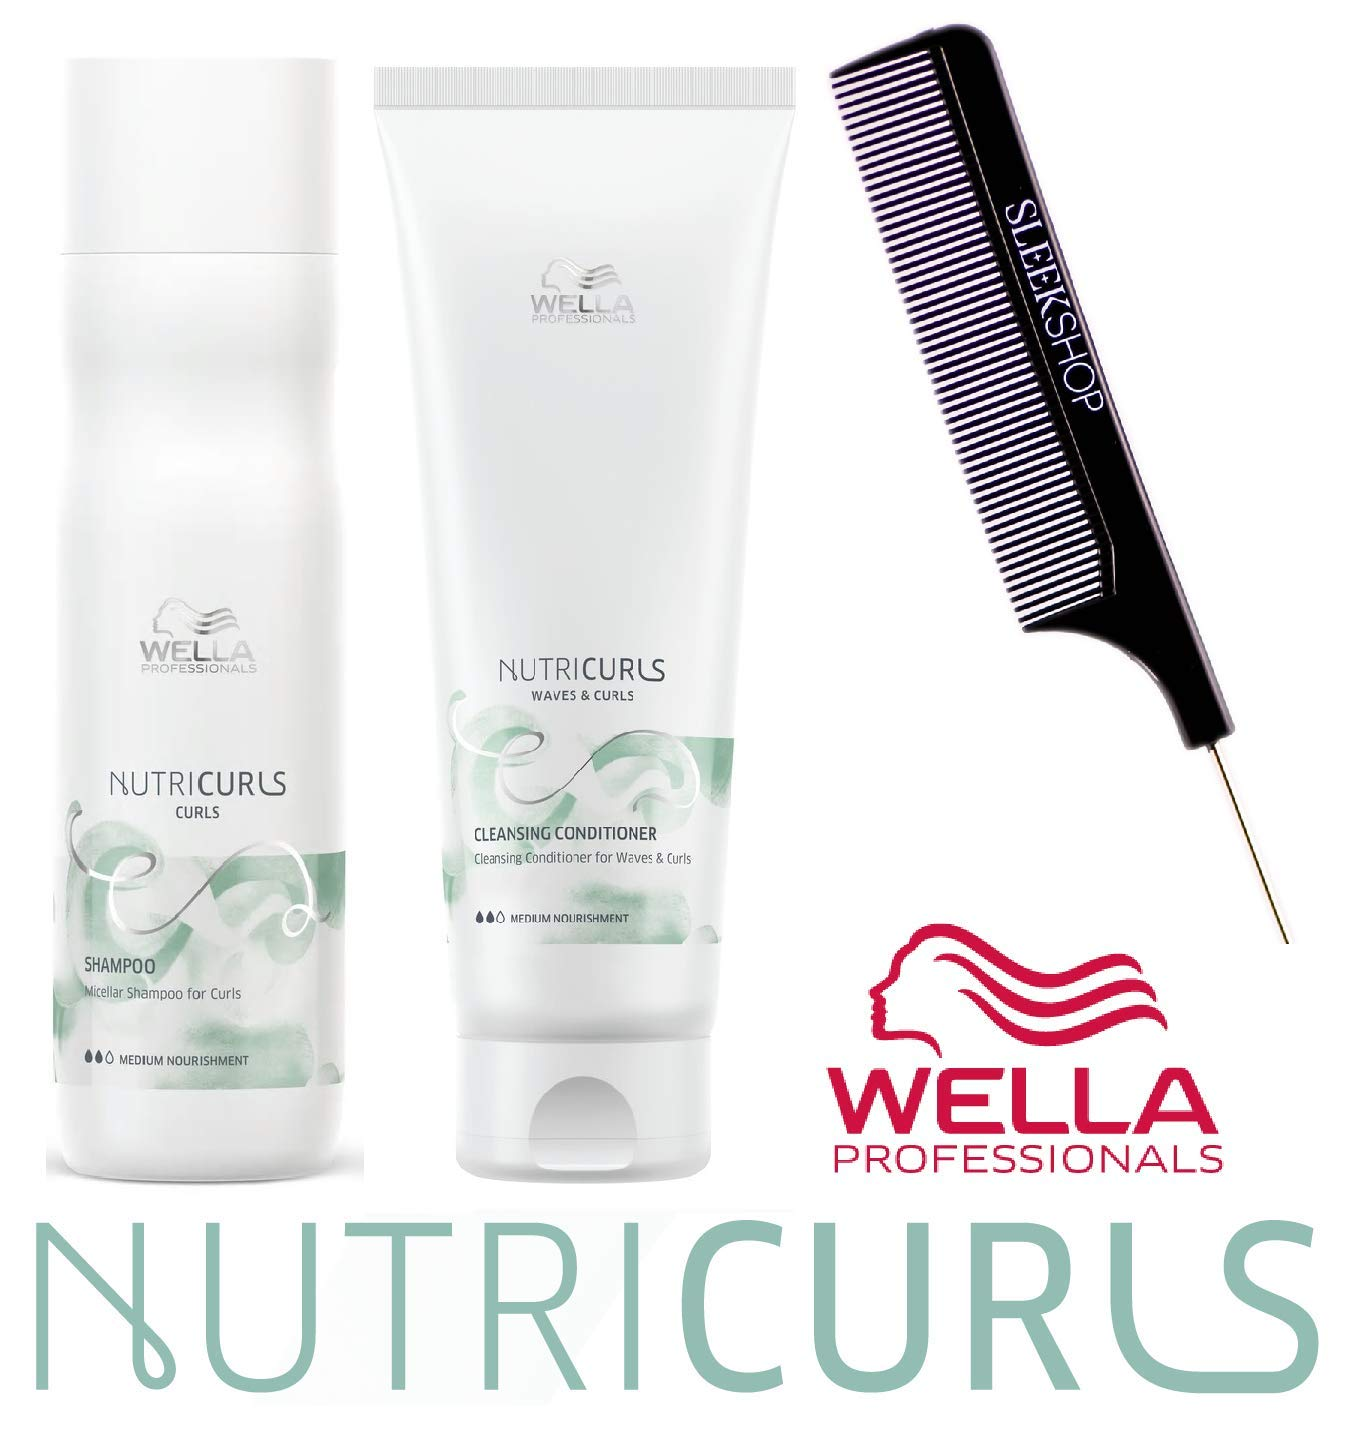 Wella NUTRICURLS Michellar Shampoo & Cleansing Conditioner for WAVES & CURLS Duo Set (w/Sleek Comb) Medium Nourishment, No Sulfates Added (8.4 oz + 8.4 oz - DUO KIT) by Coty Wella